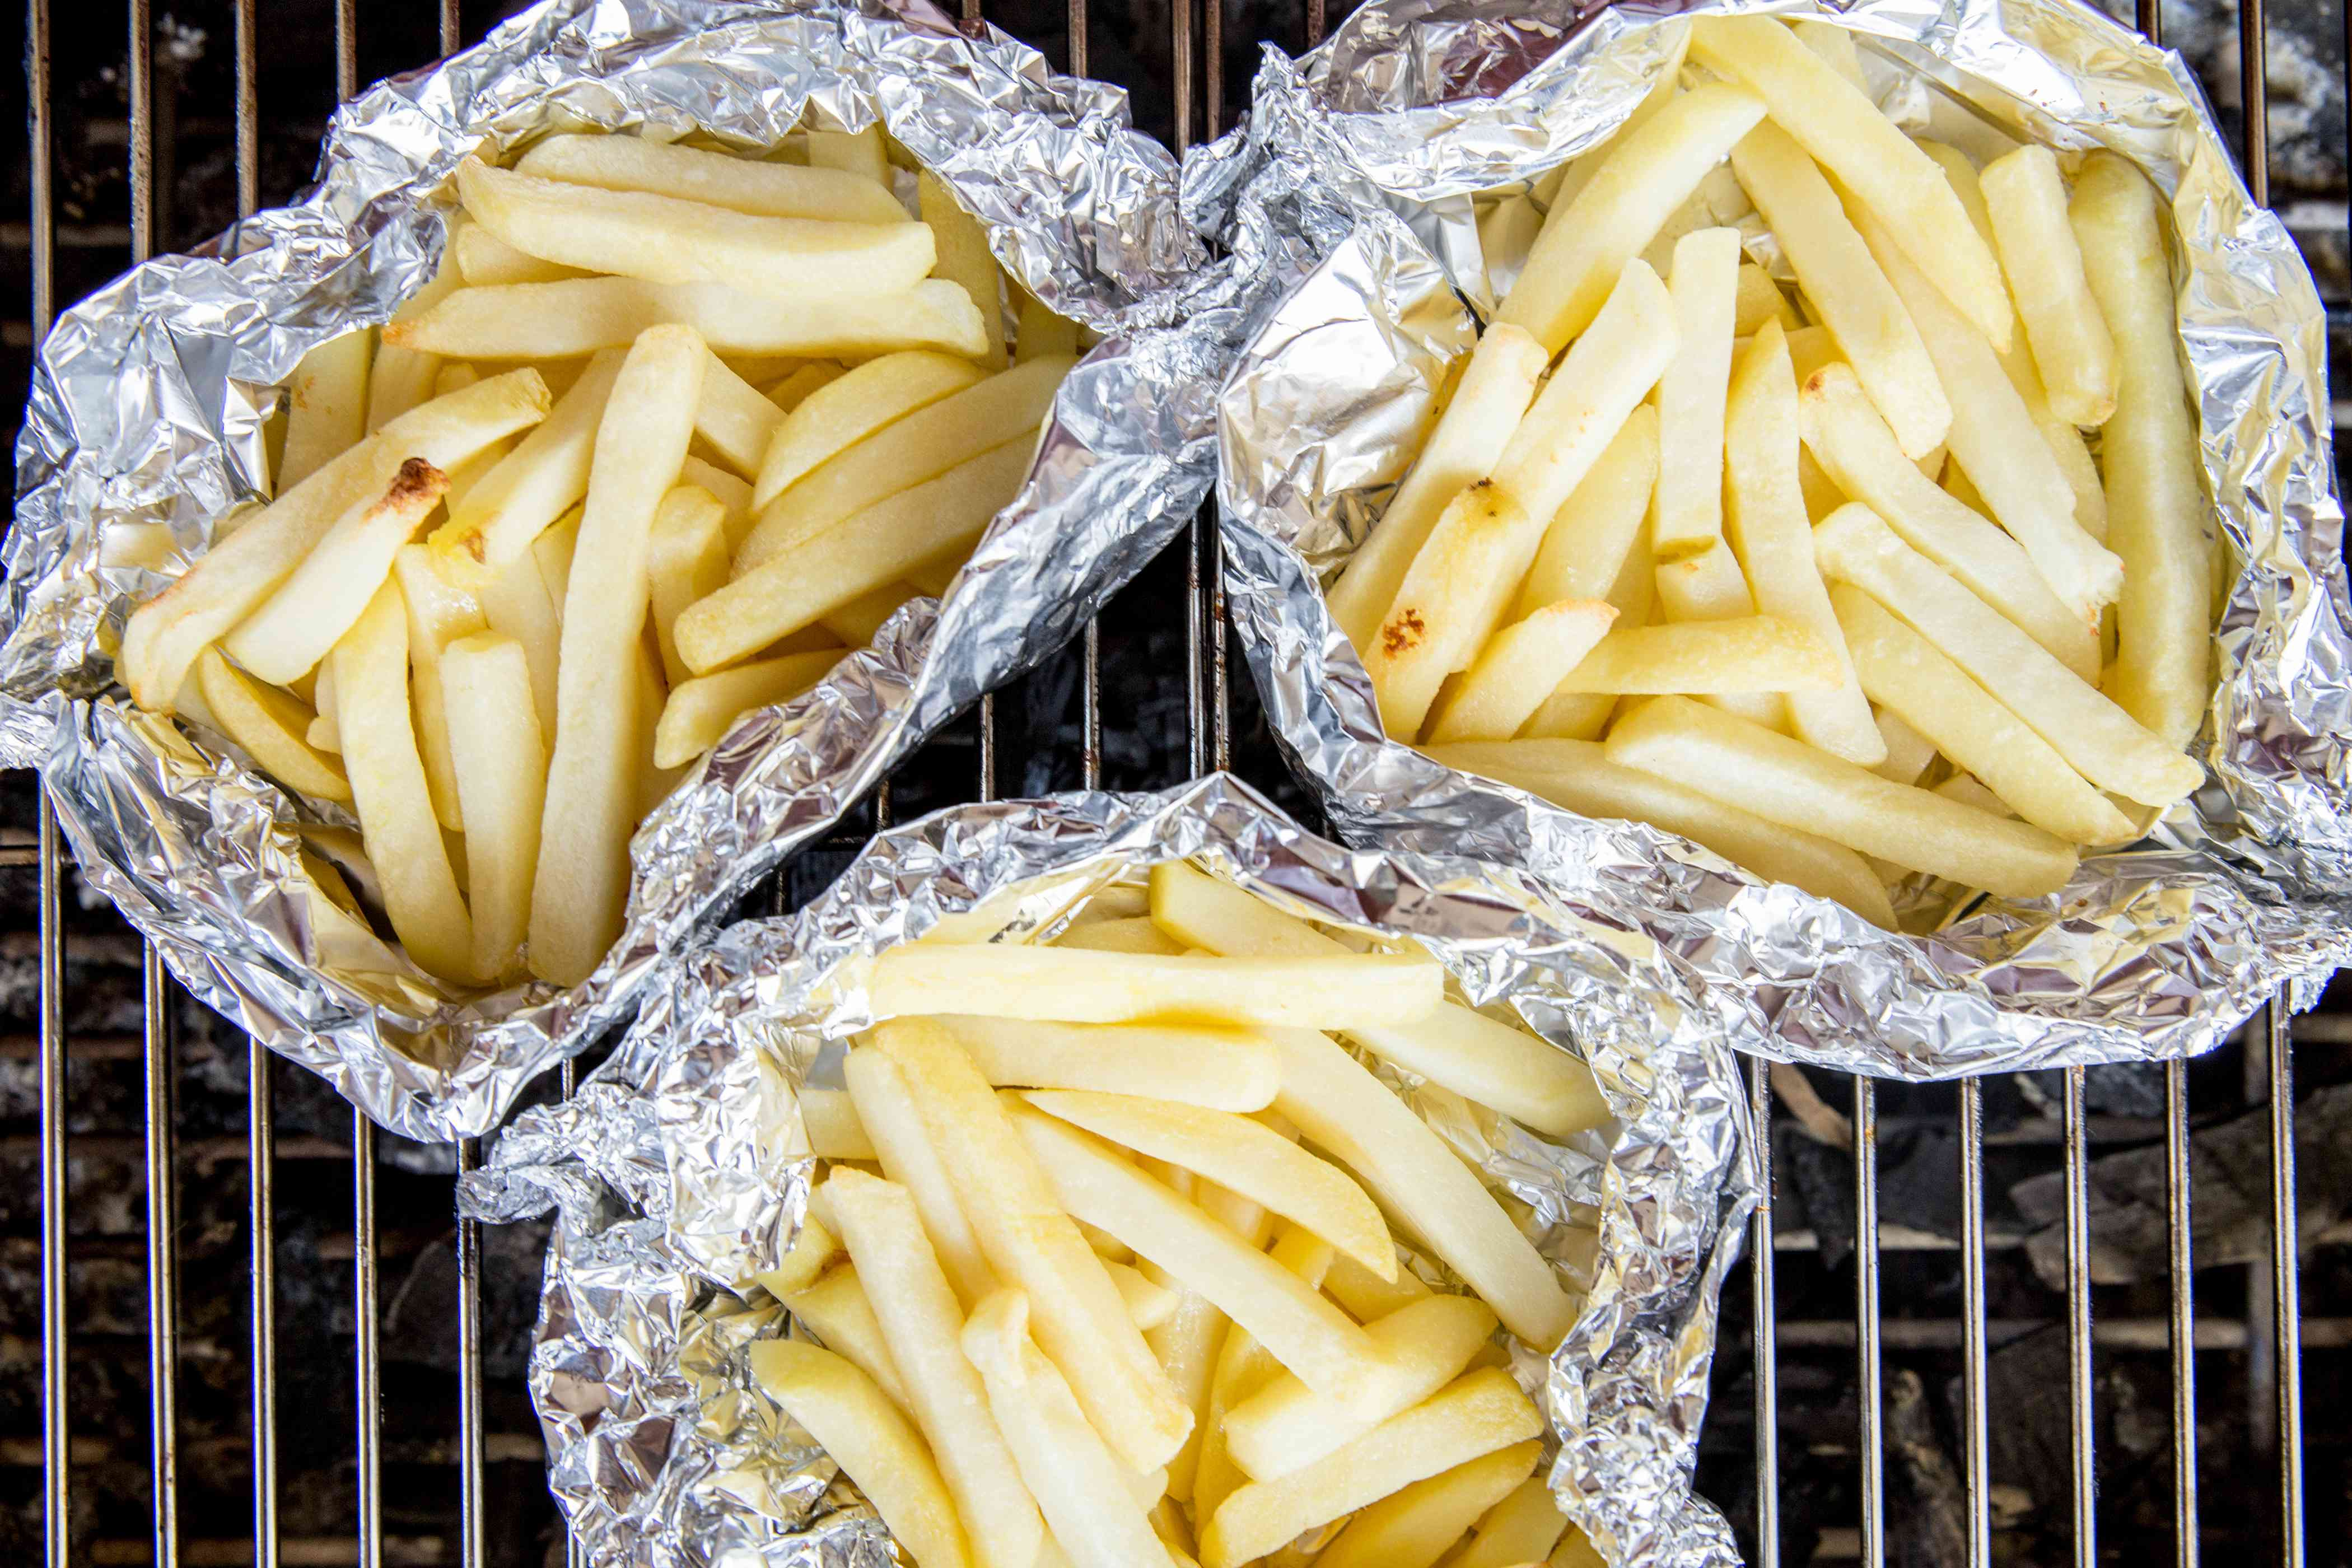 french fries in aluminum foil boats on a grill